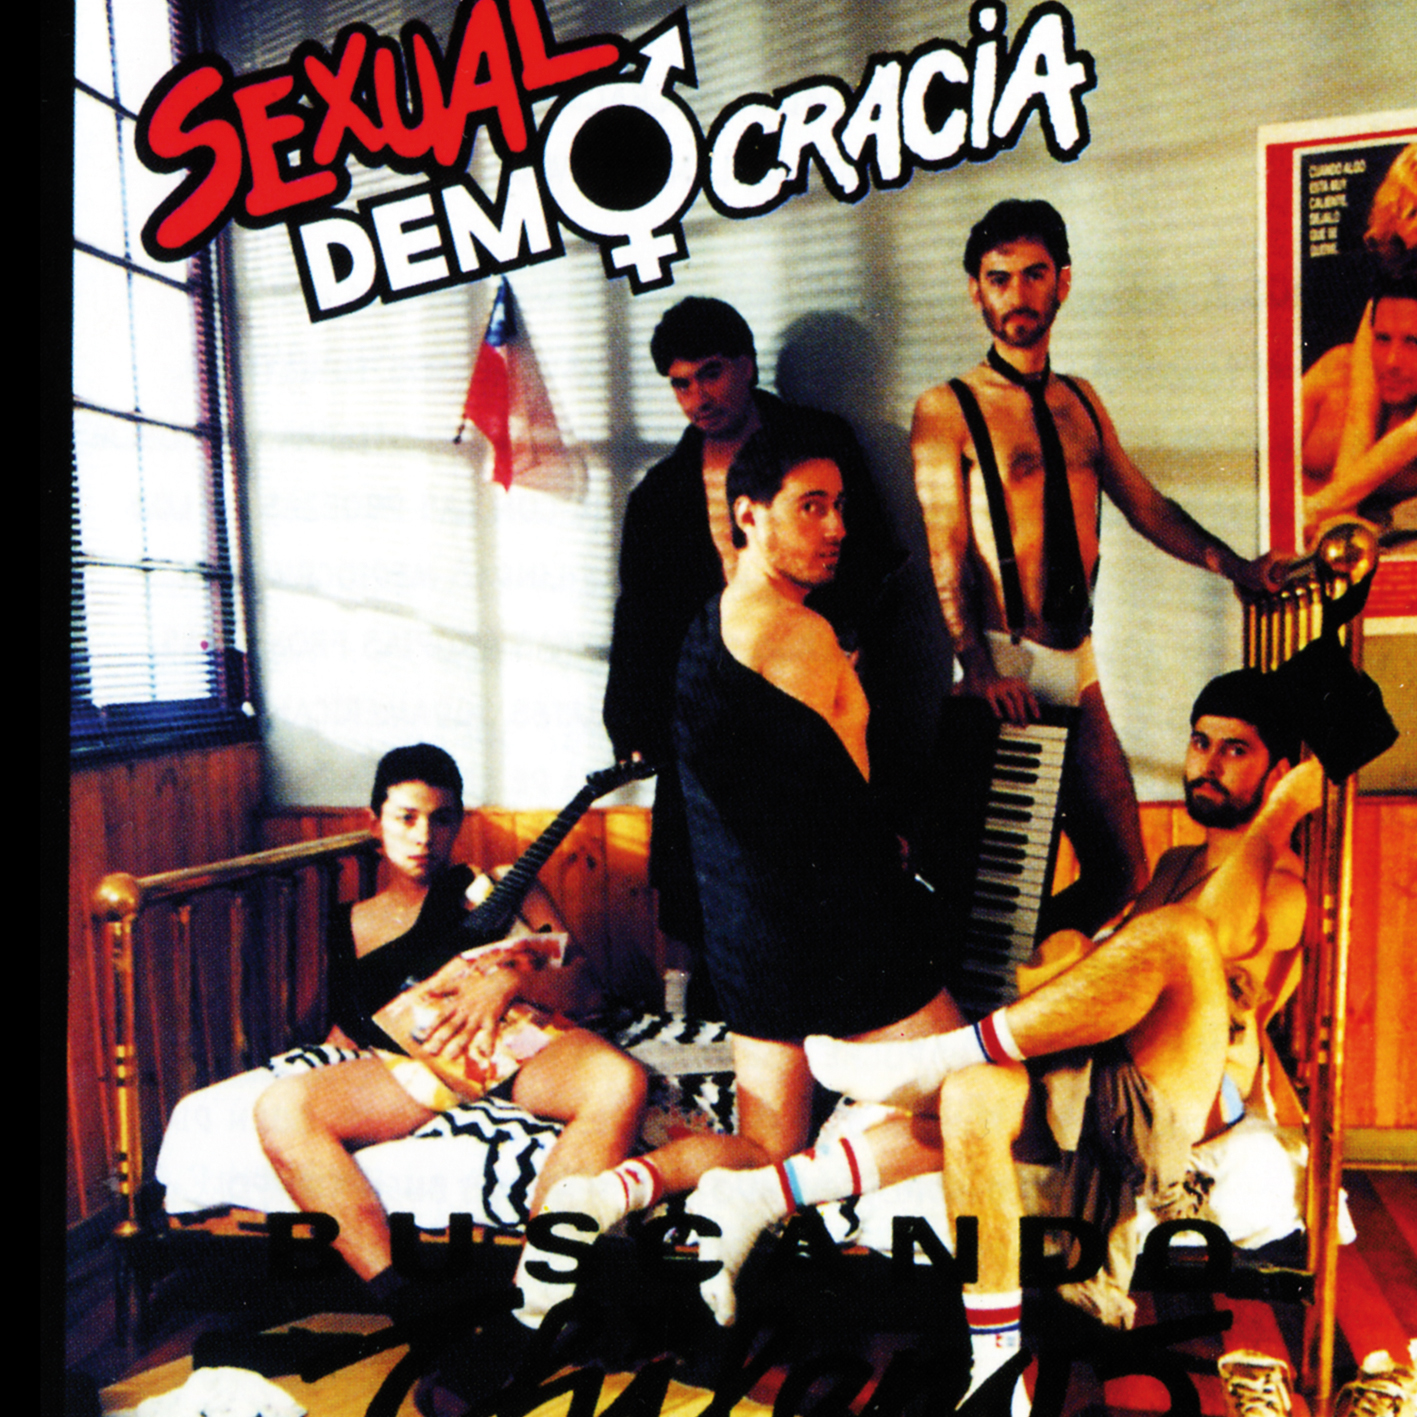 carátula sexual Democracia